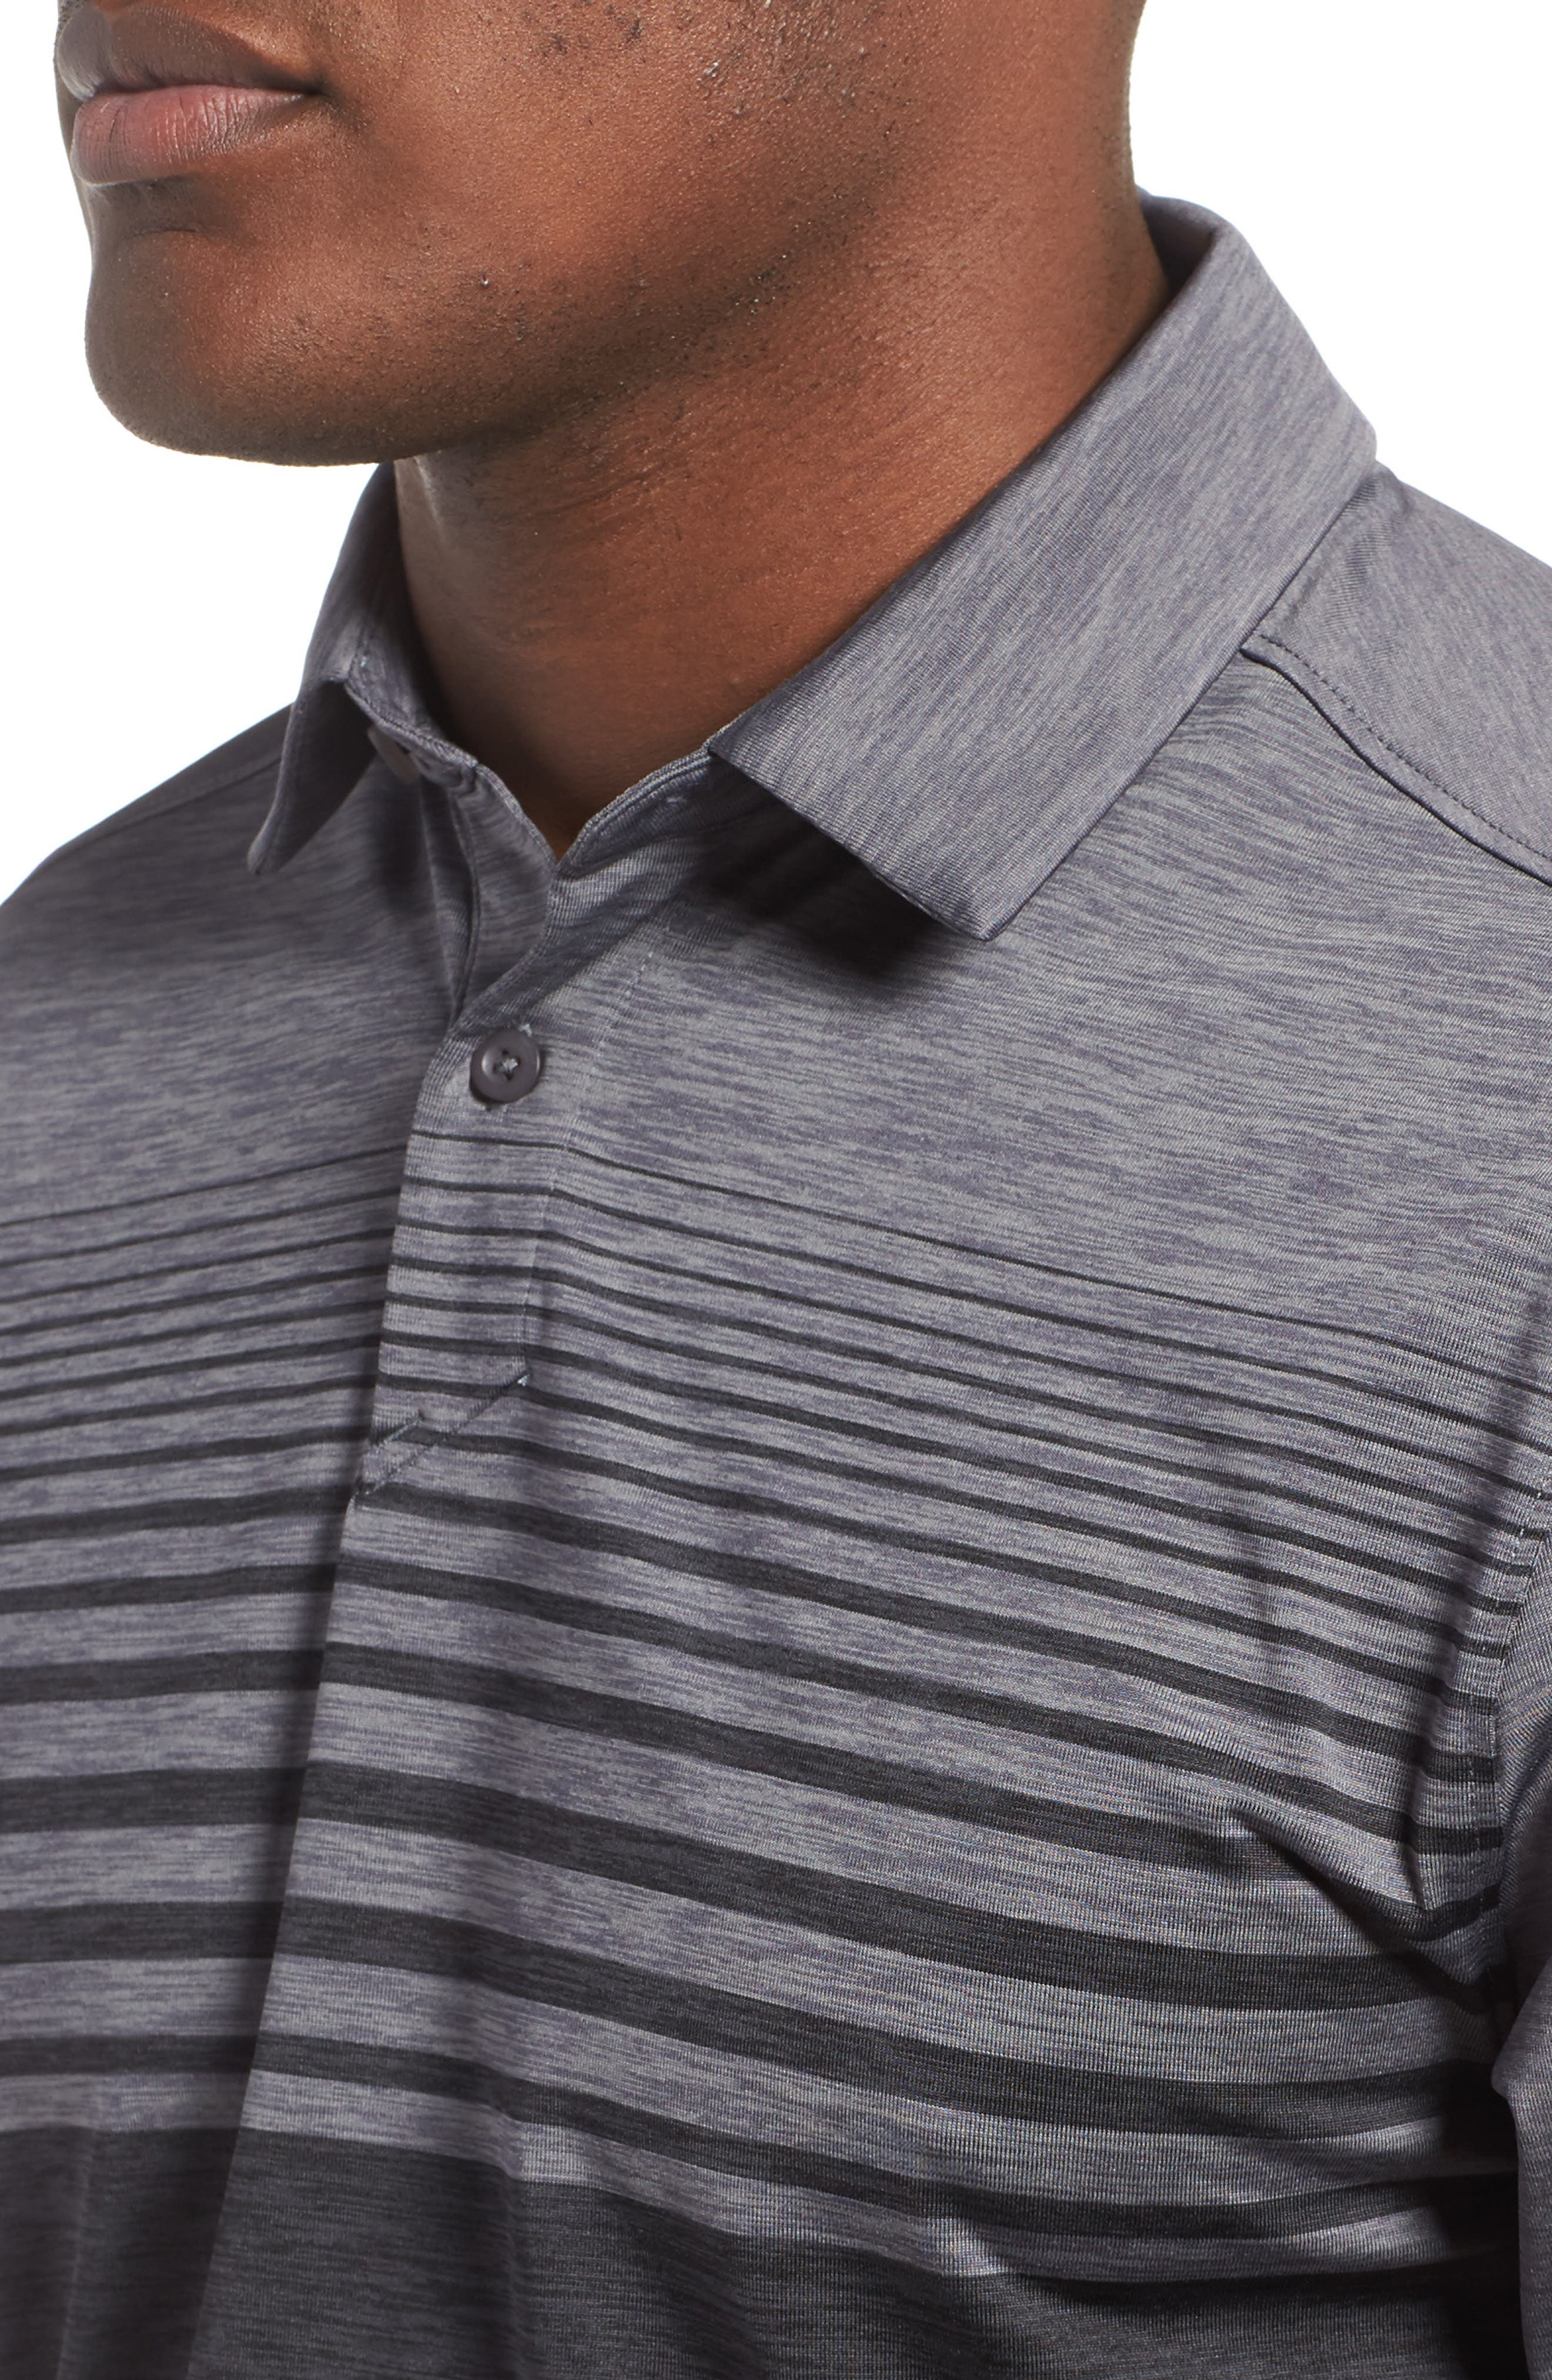 CoolSwitch Regular Fit Polo,                             Alternate thumbnail 4, color,                             076